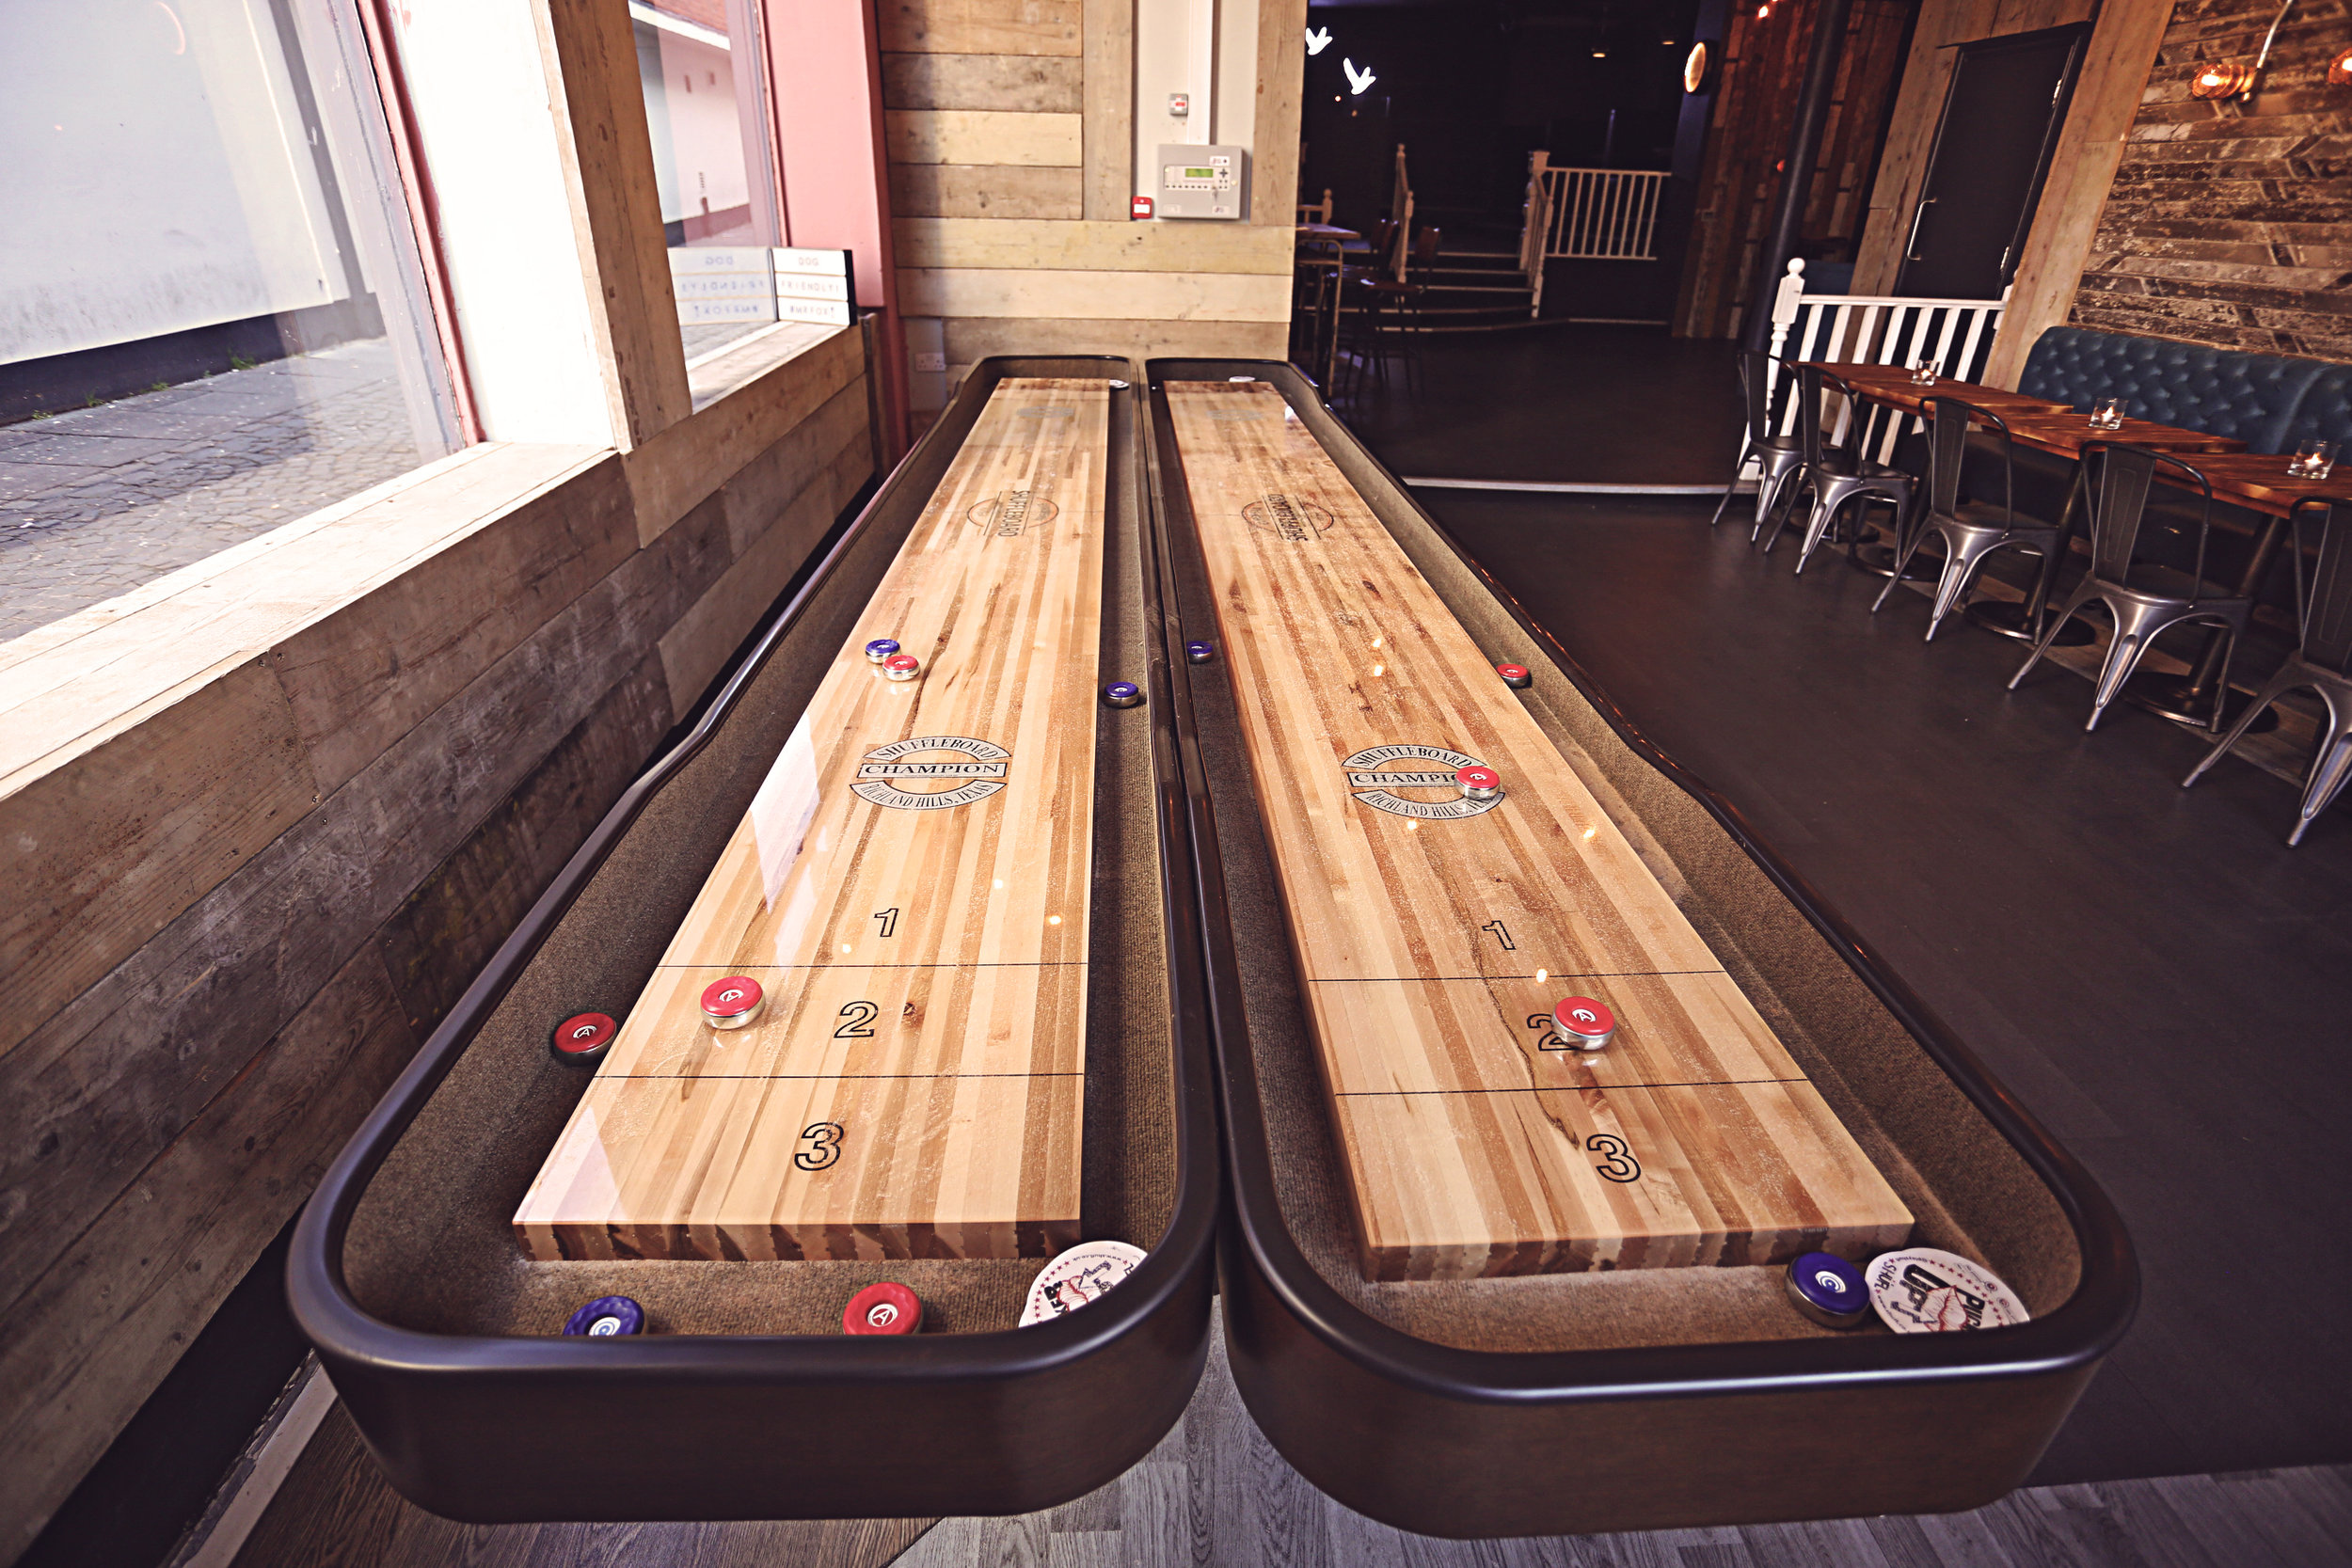 Shuffleboards - Book some times slots for your groups to get their game on!